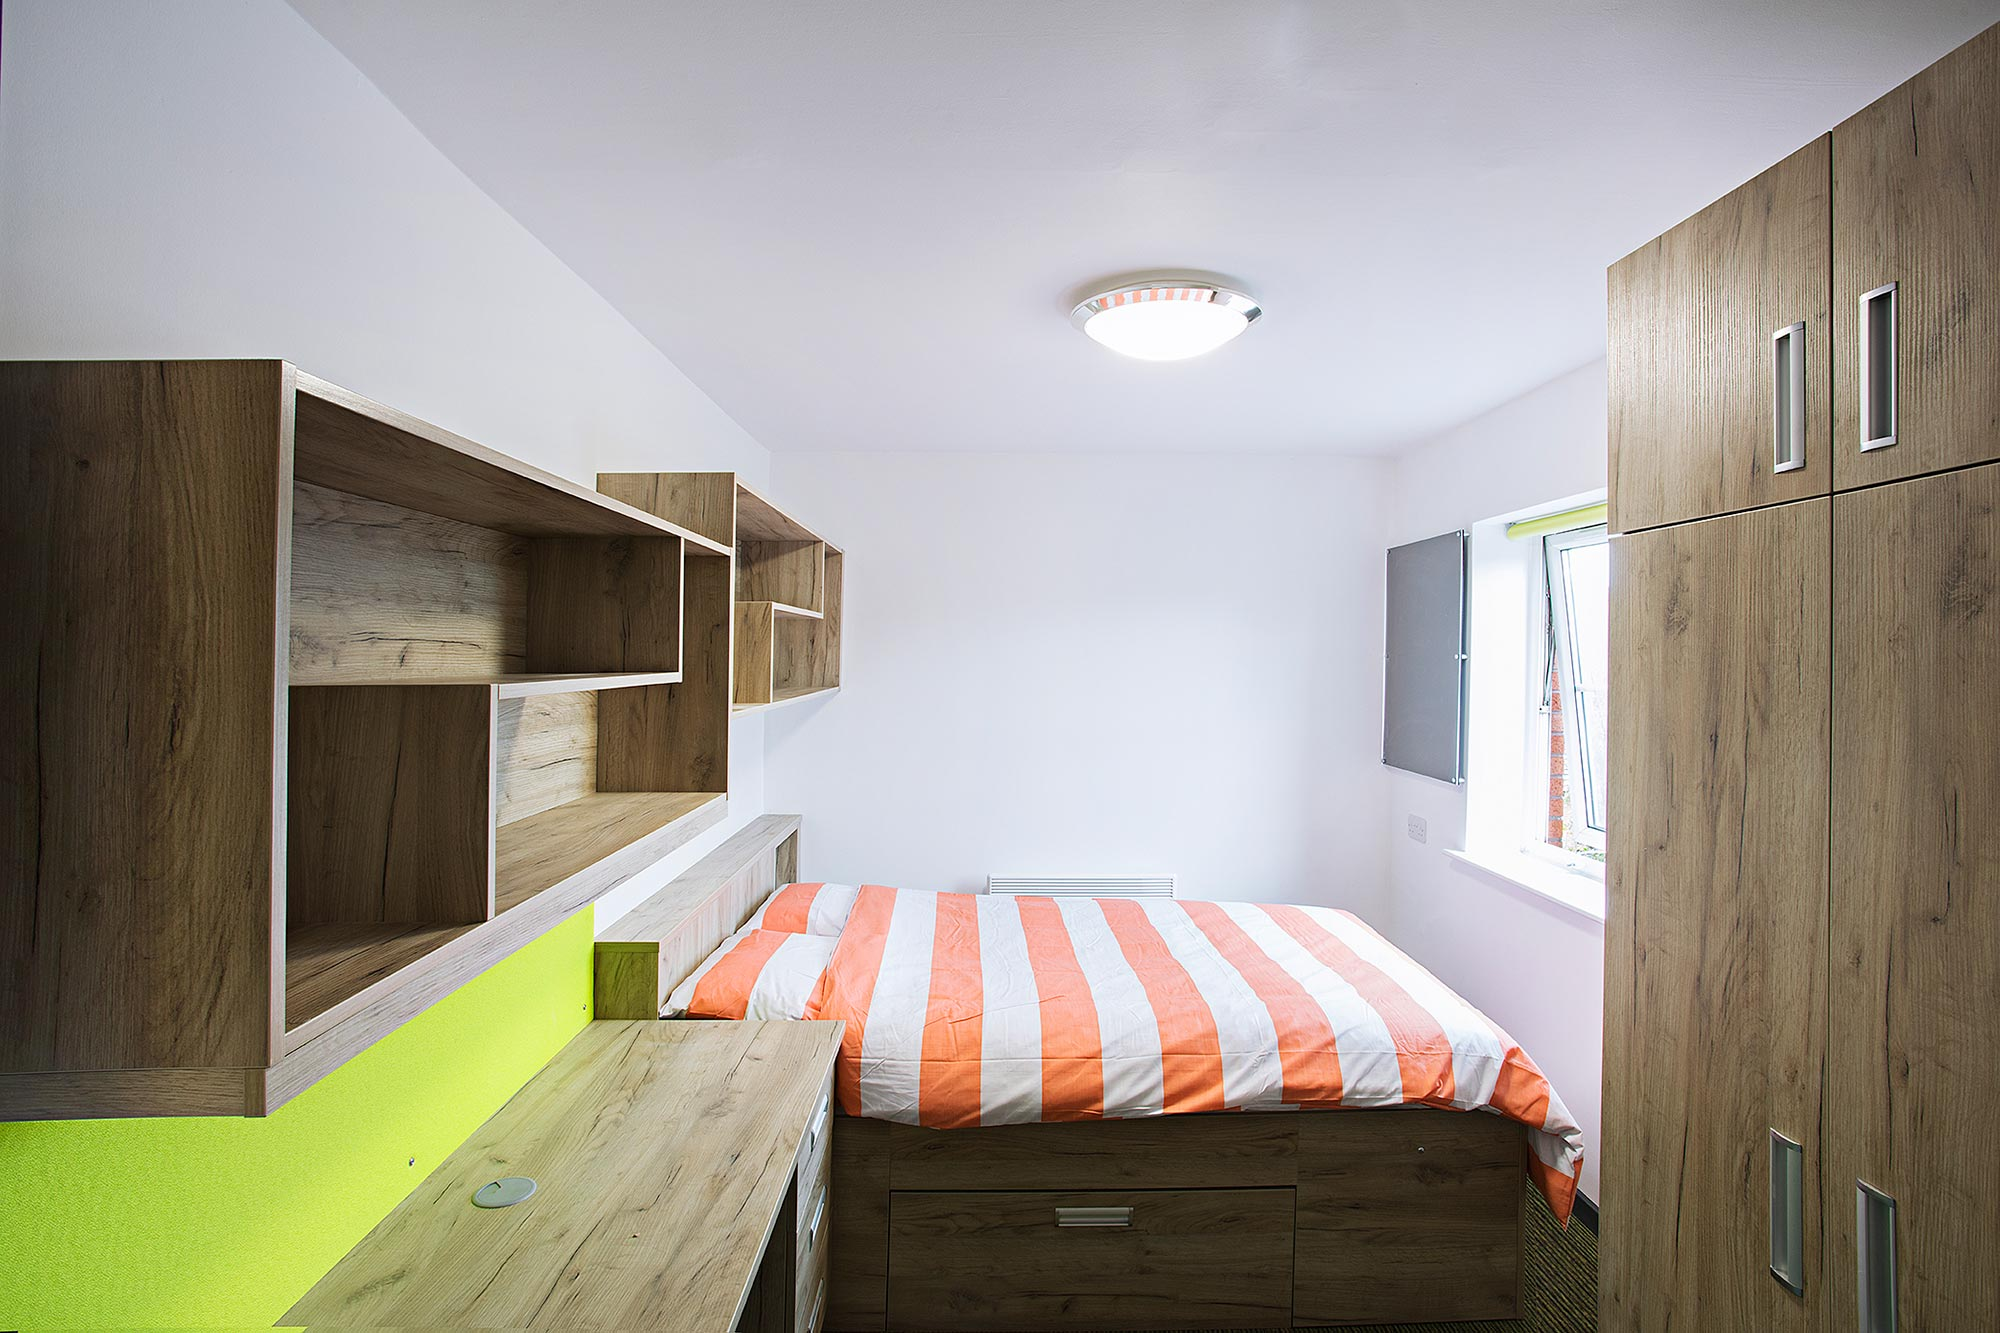 Derby University Student accommodation refurbishment by Troy group - bedroom shot